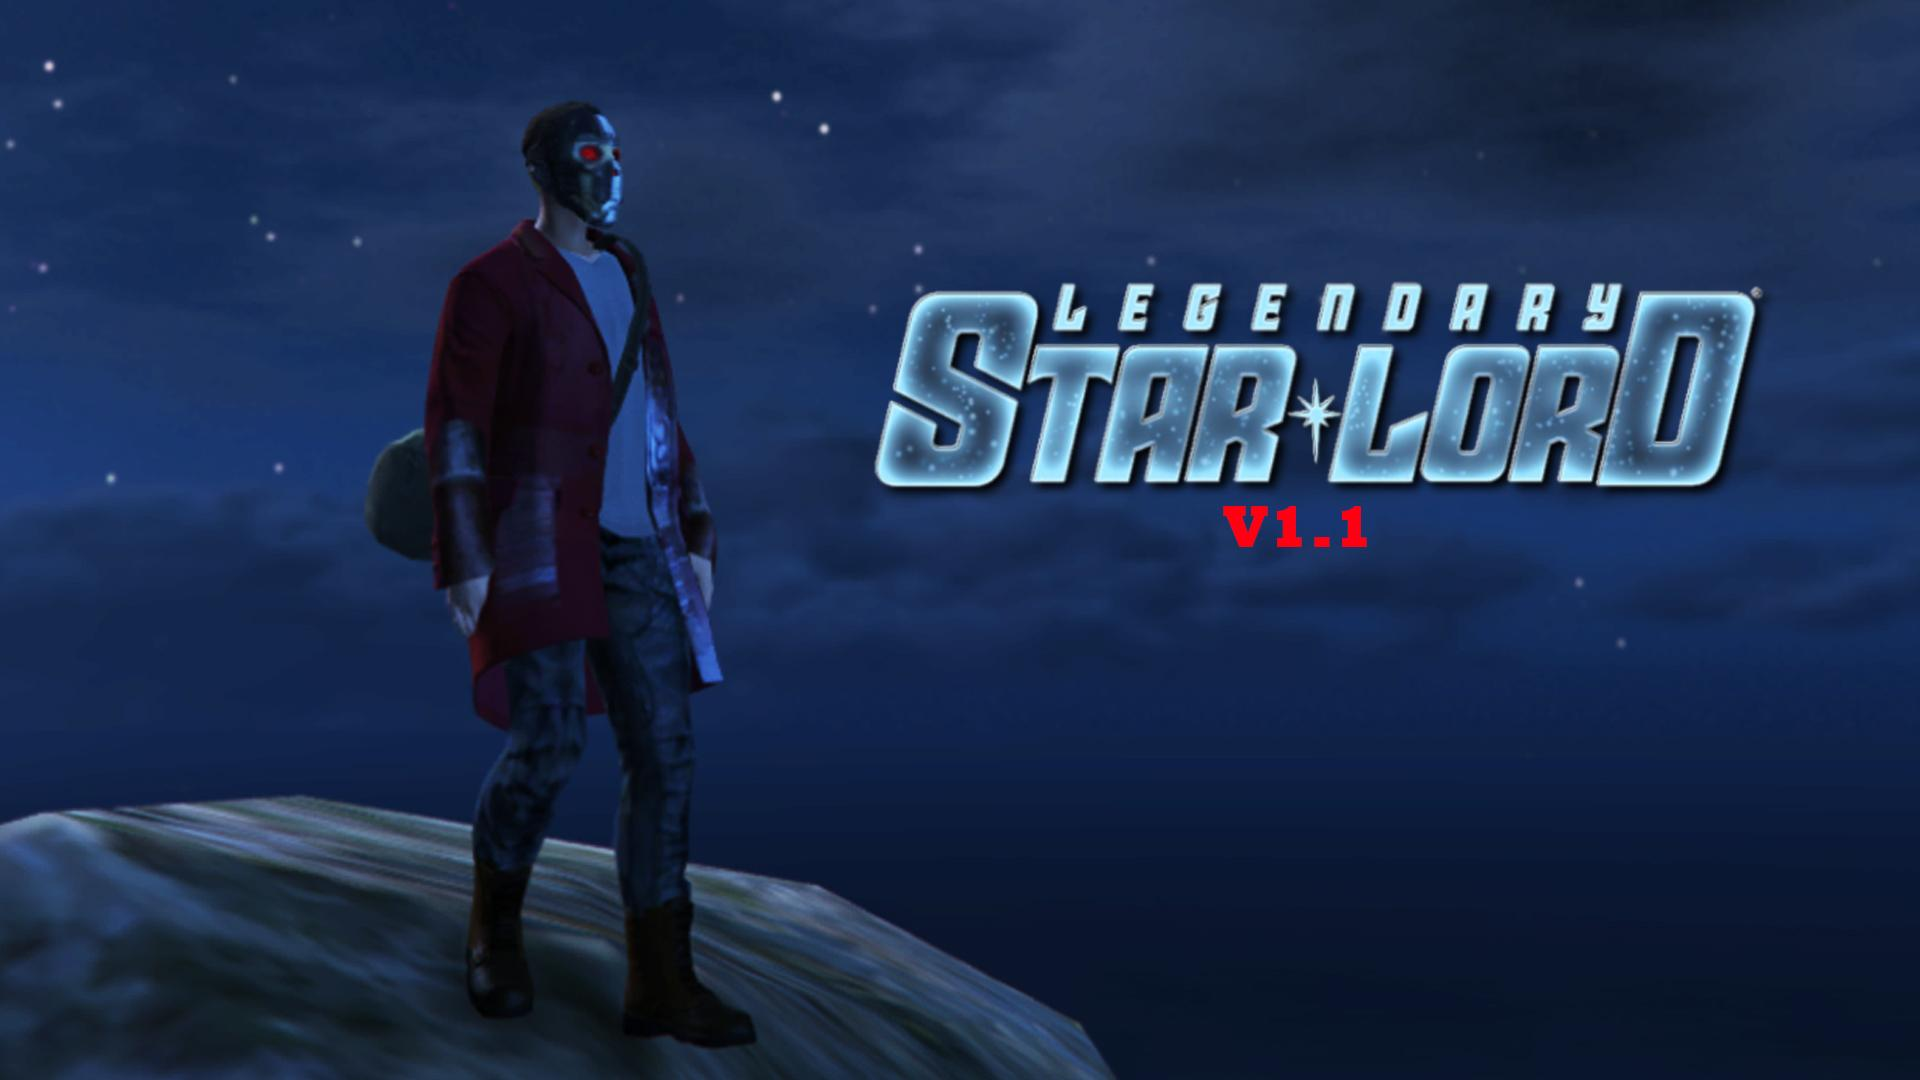 Star lord guardians of the galaxy gta5 mods com